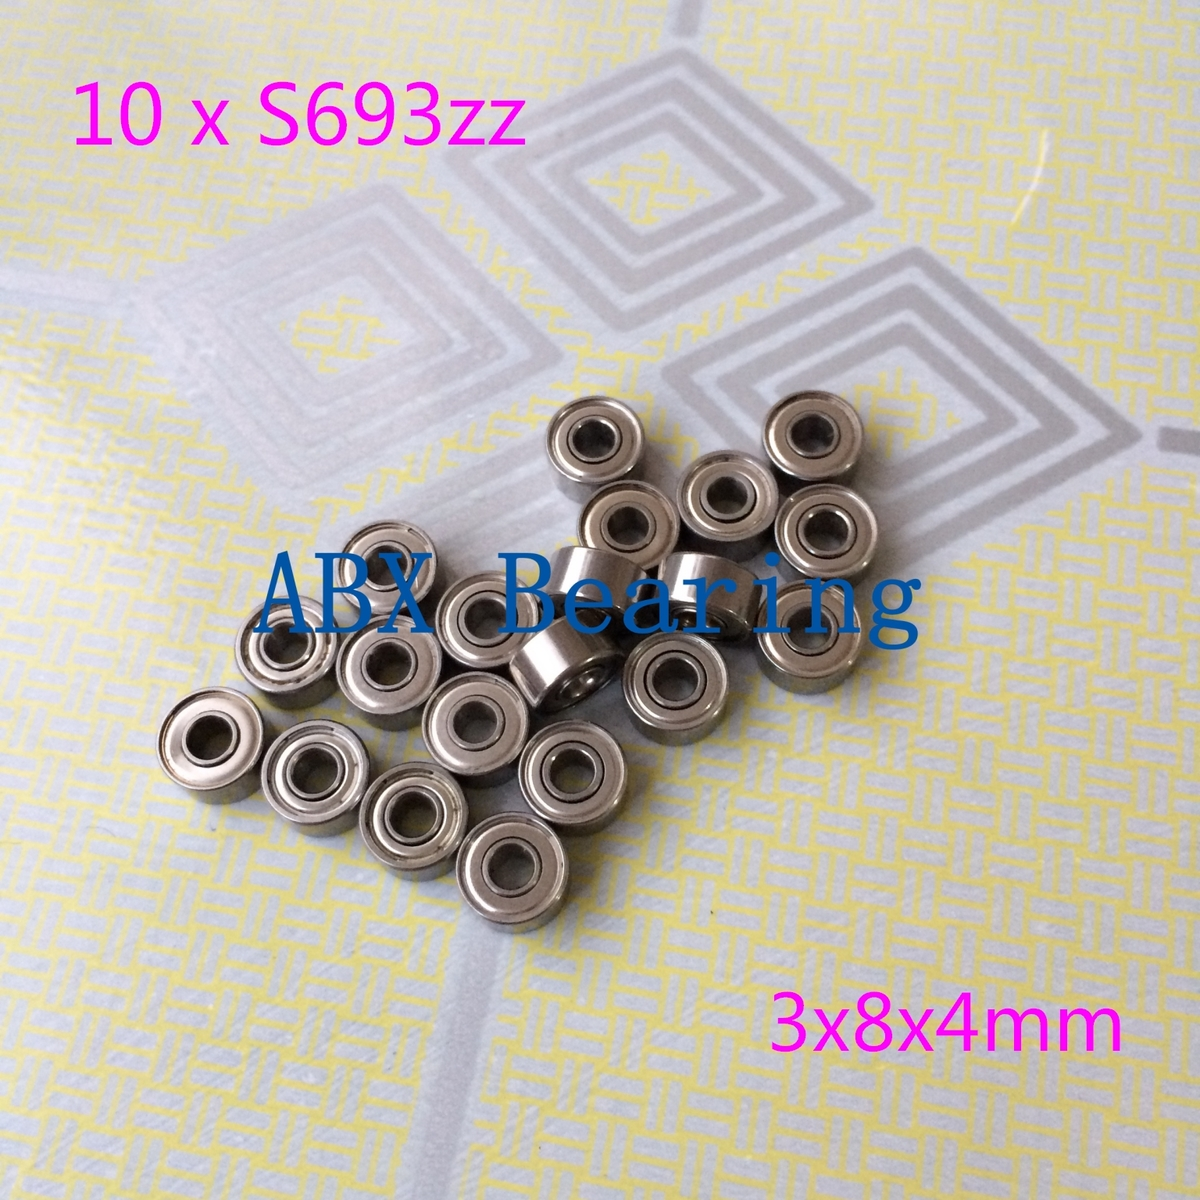 Free Shipping 10 PCS S693ZZ S693Z S693 693ZZ 693 Bearings 3x8x4 mm Stainless Steel Ball Bearings DDR-830ZZ SSR-830ZZ 3*8*4 mm free shipping 10 pcs 684zz 684z 684 bearings 4x9x4 mm miniature ball bearings l 940zz abec5